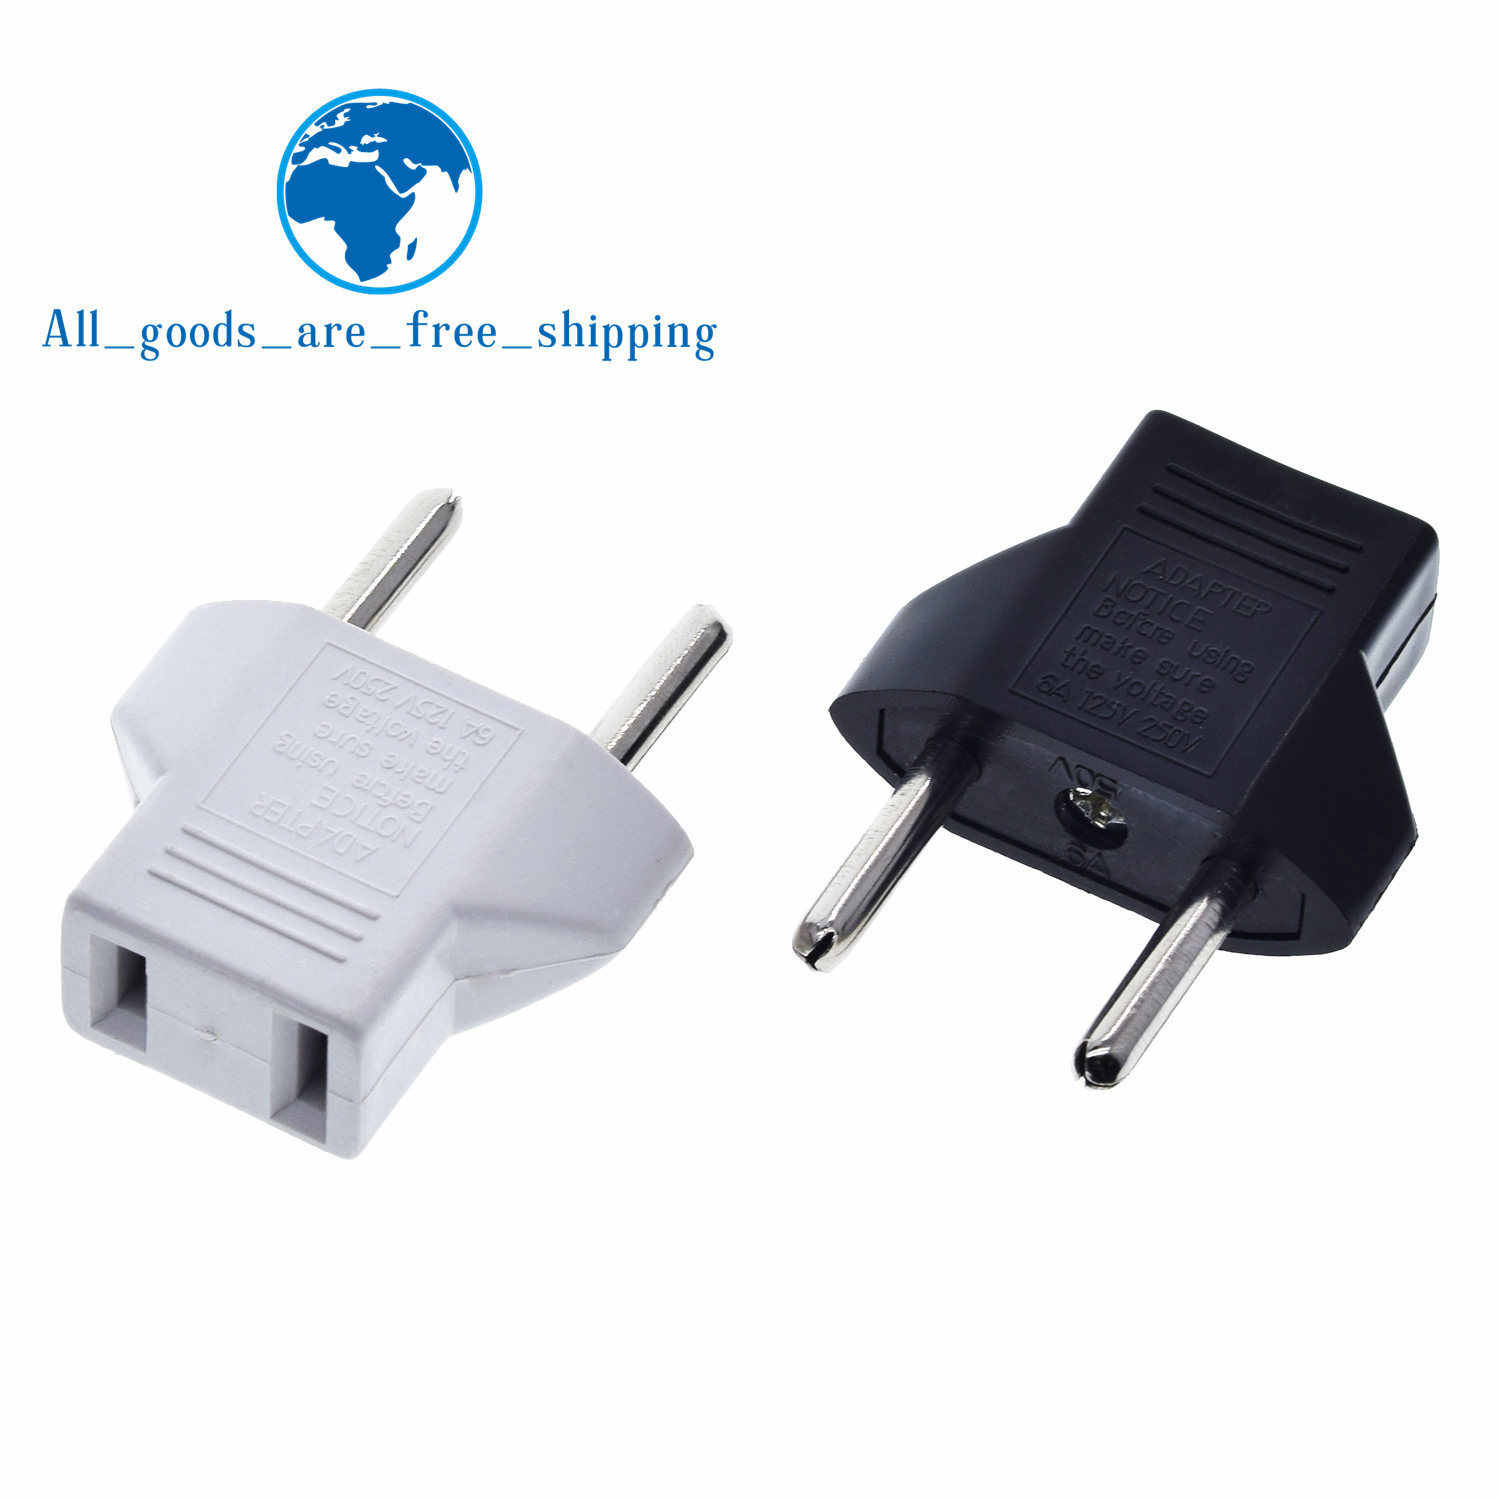 Tzt Universele Ons Om Eu Plug Usa Om Euro Europa Travel Wall Ac Power Charger Outlet Adapter Converter 2 Ronde socket Input Pin